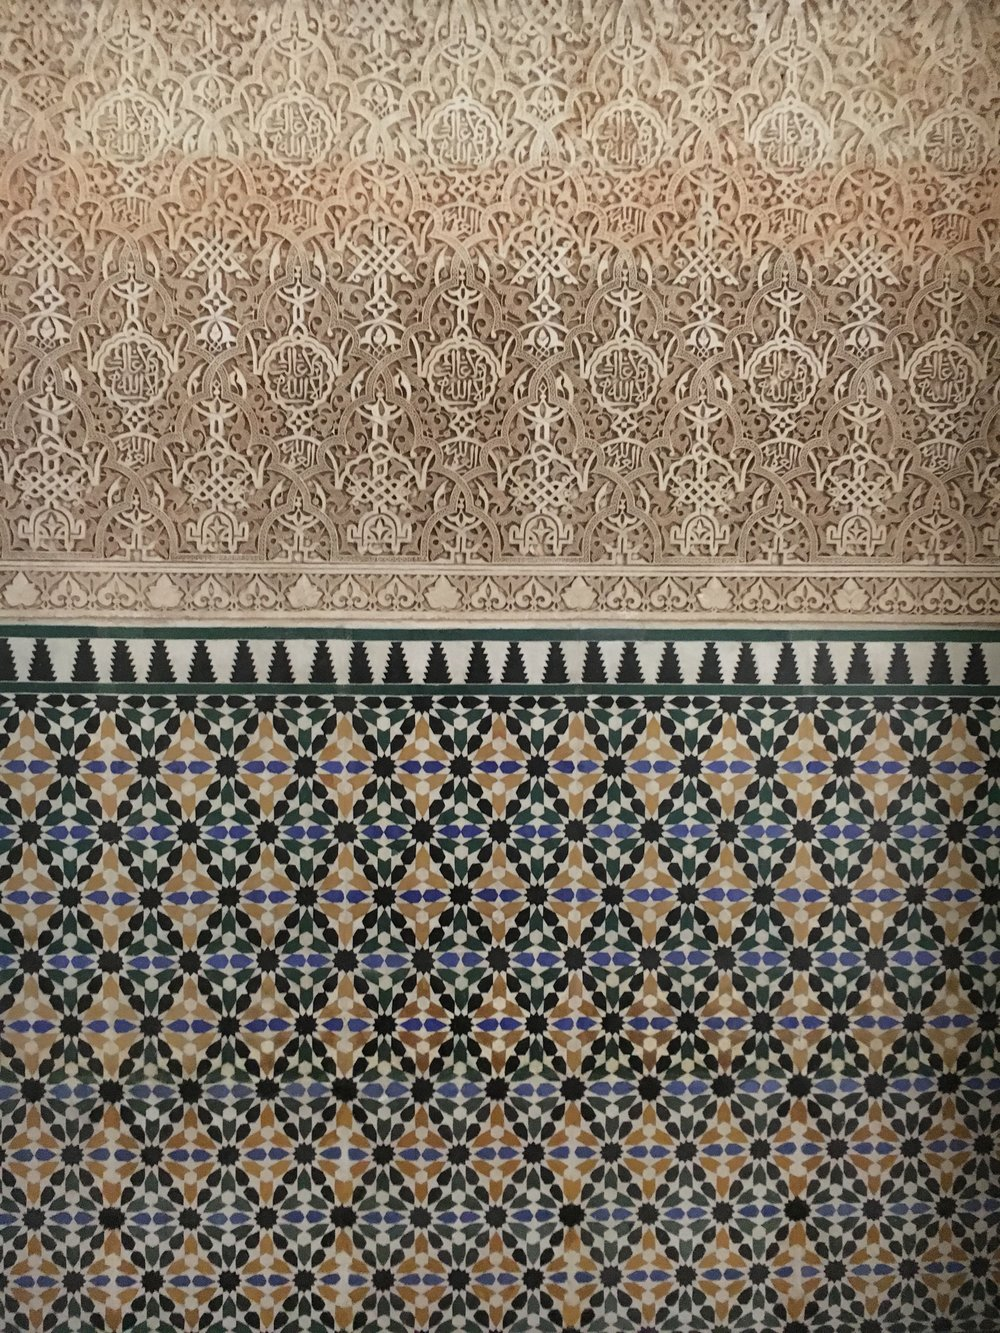 carved plaster and tiles details from the Alhabmra